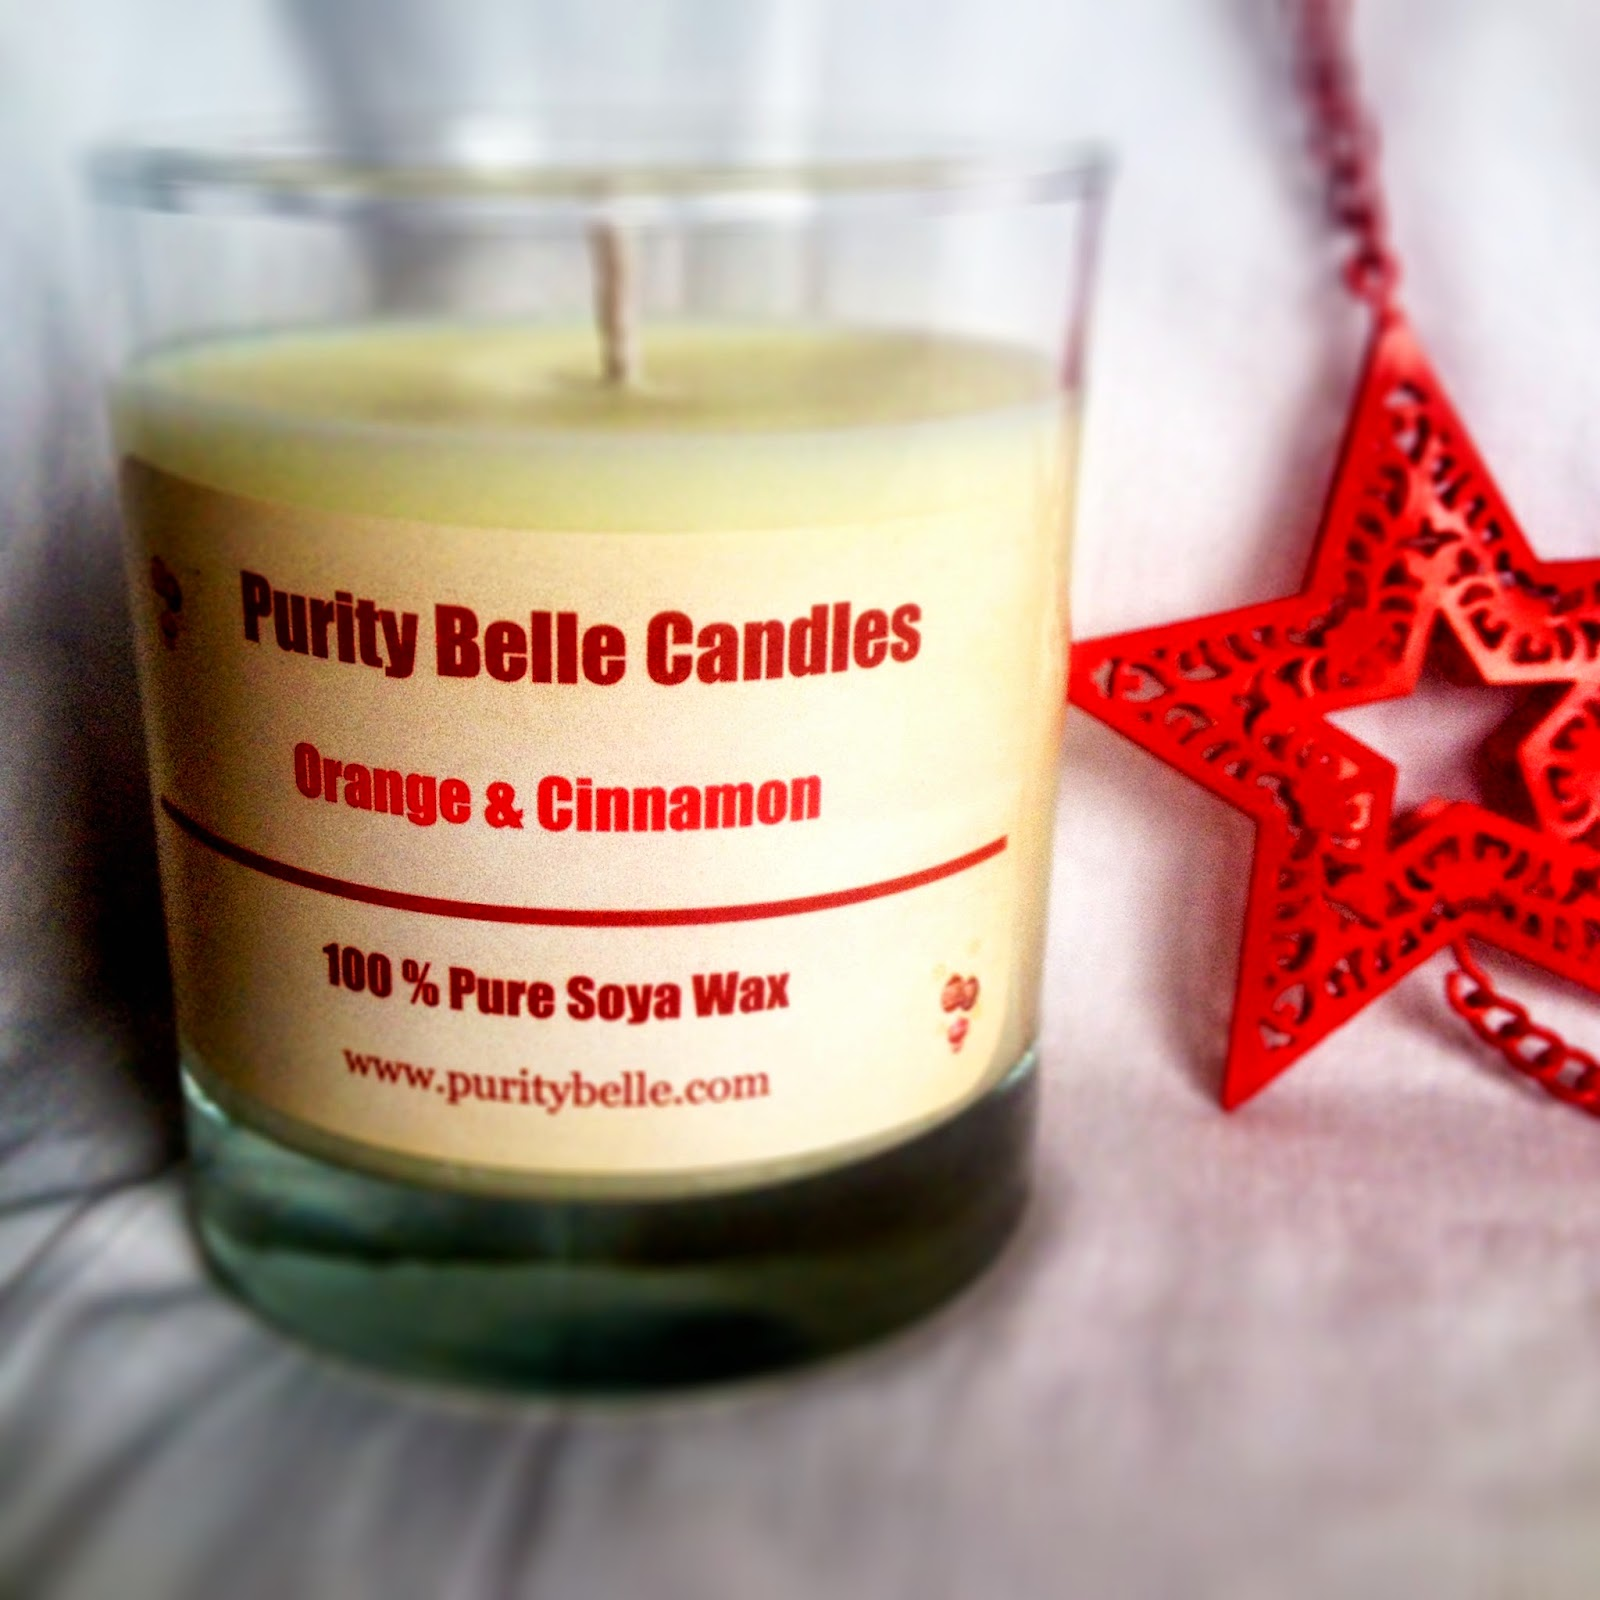 Orange & Cinnamon Candle Purity Belle